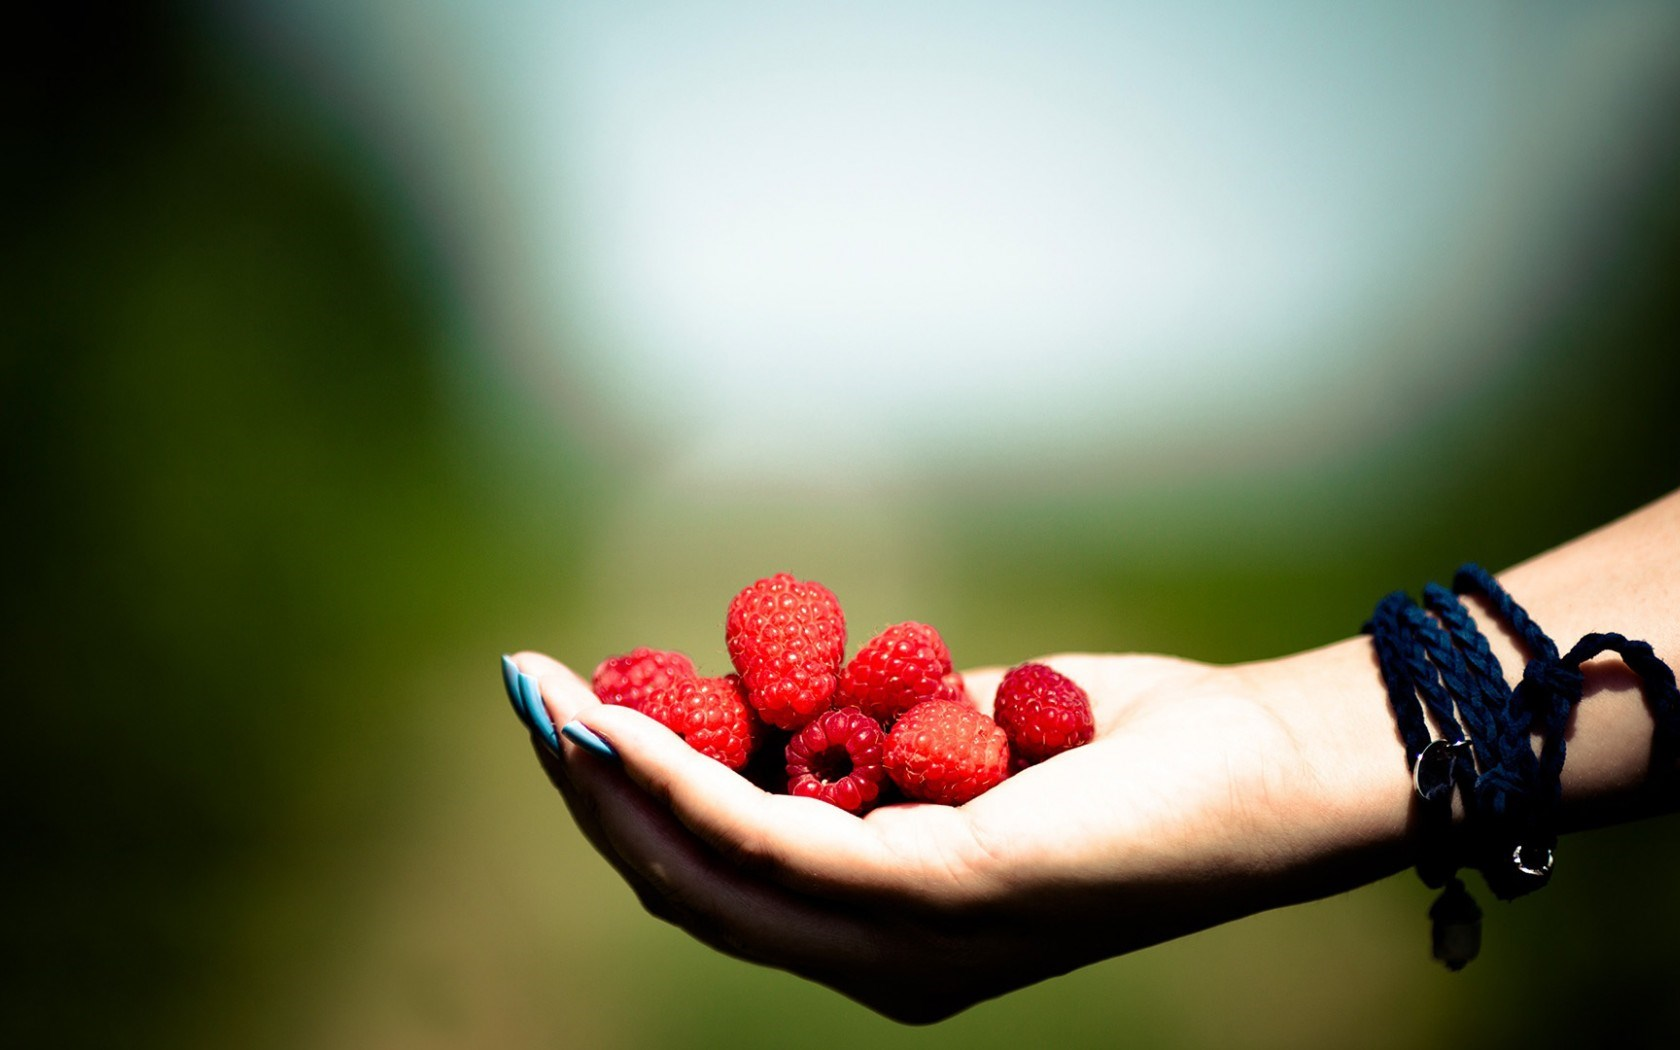 mood, macro, focus, photography, hand, raspberries, desktop hd, girl 1403